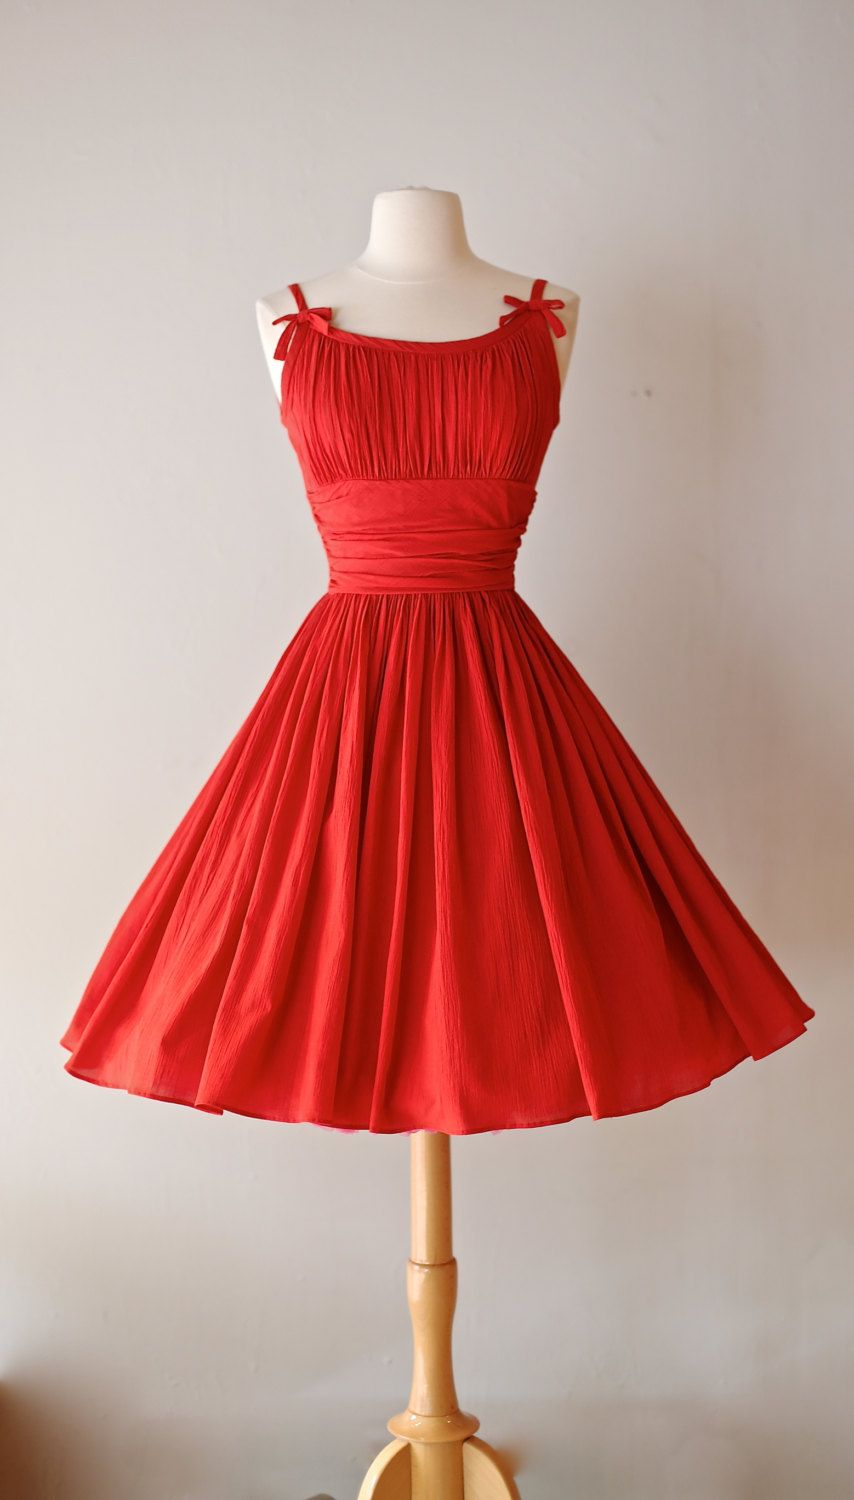 4063f1494a7dd Vintage 1950s Red Party Dress ~ Vintage 50s Jonathan Logan Red Dress with  Full Skirt and Bows by xtabayvintage on Etsy